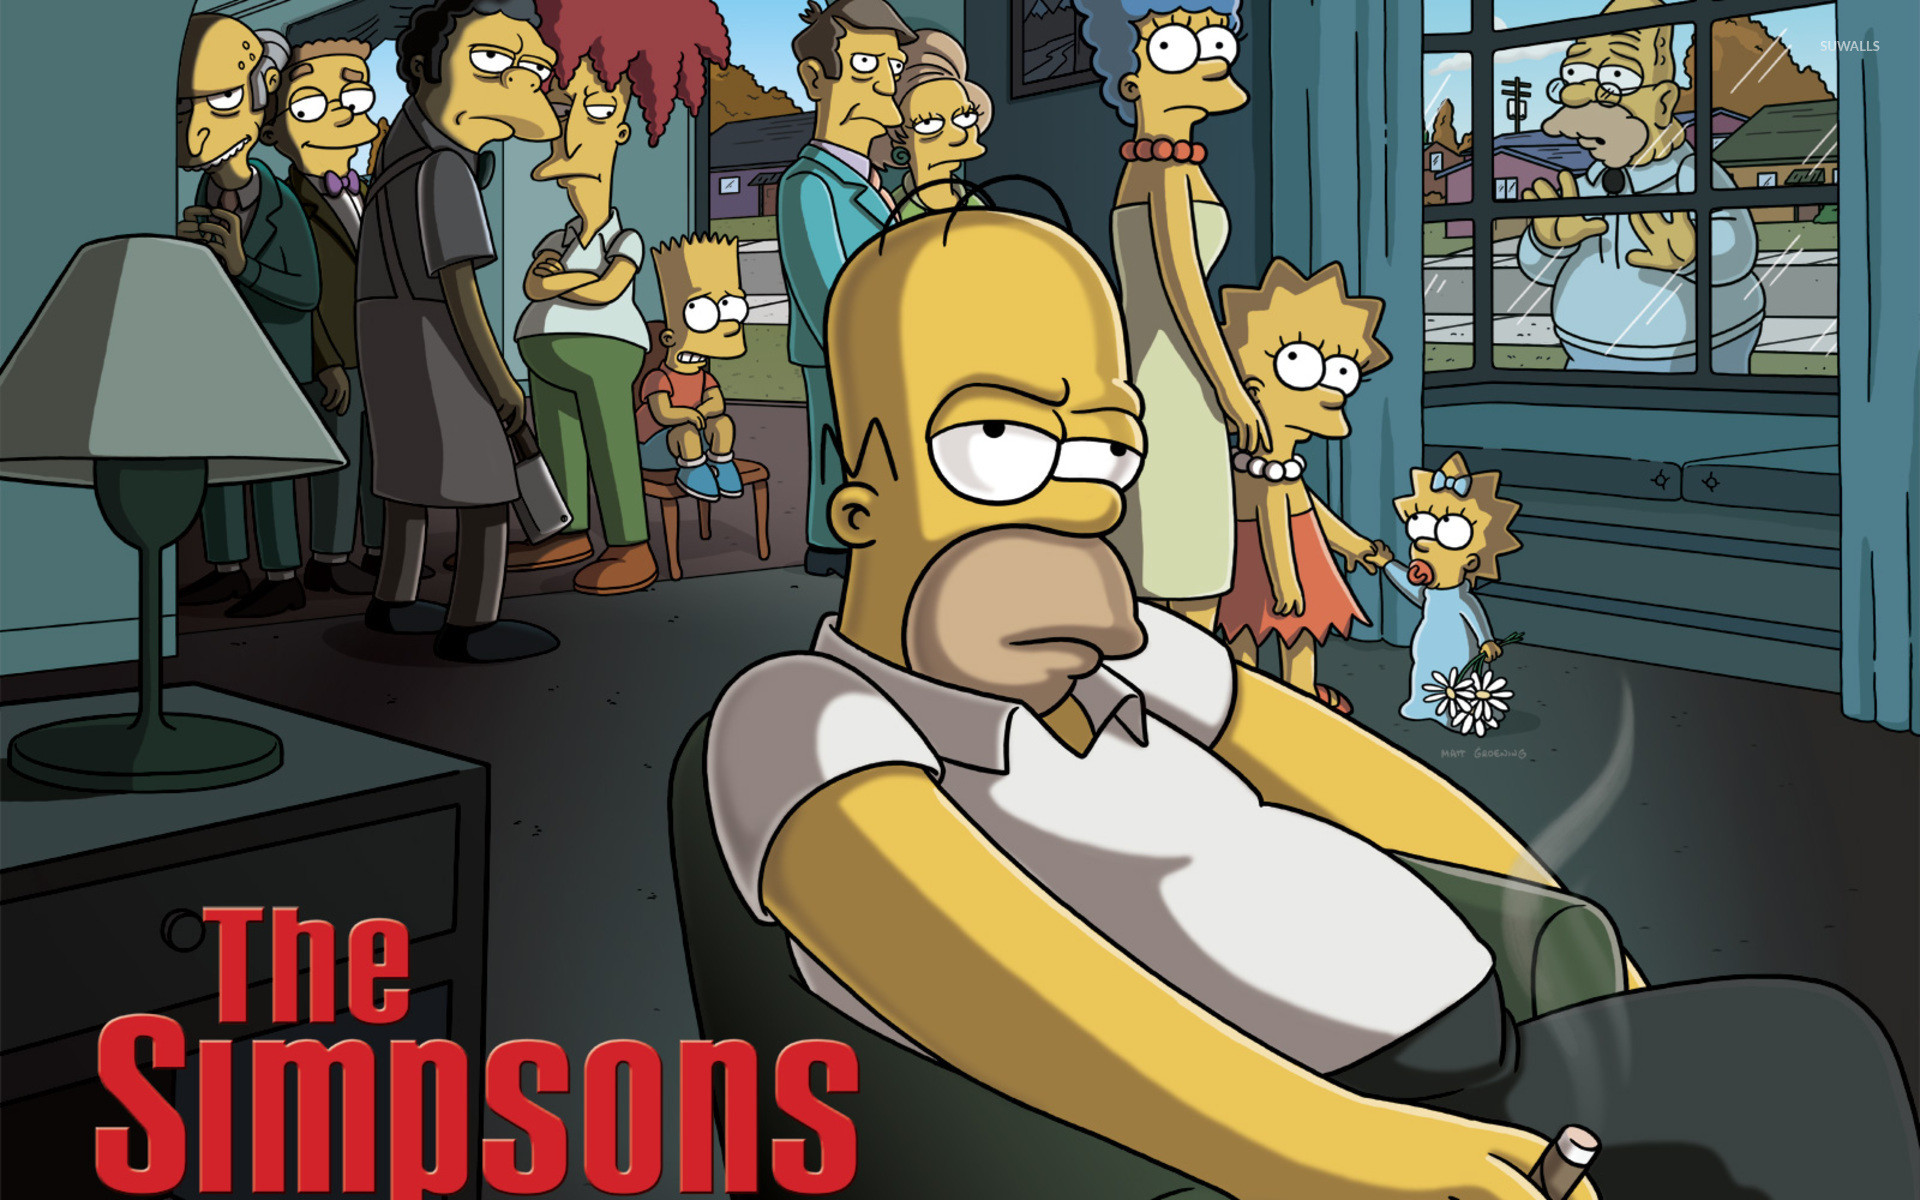 Res: 1920x1200, The Simpsons - The Godfather wallpaper